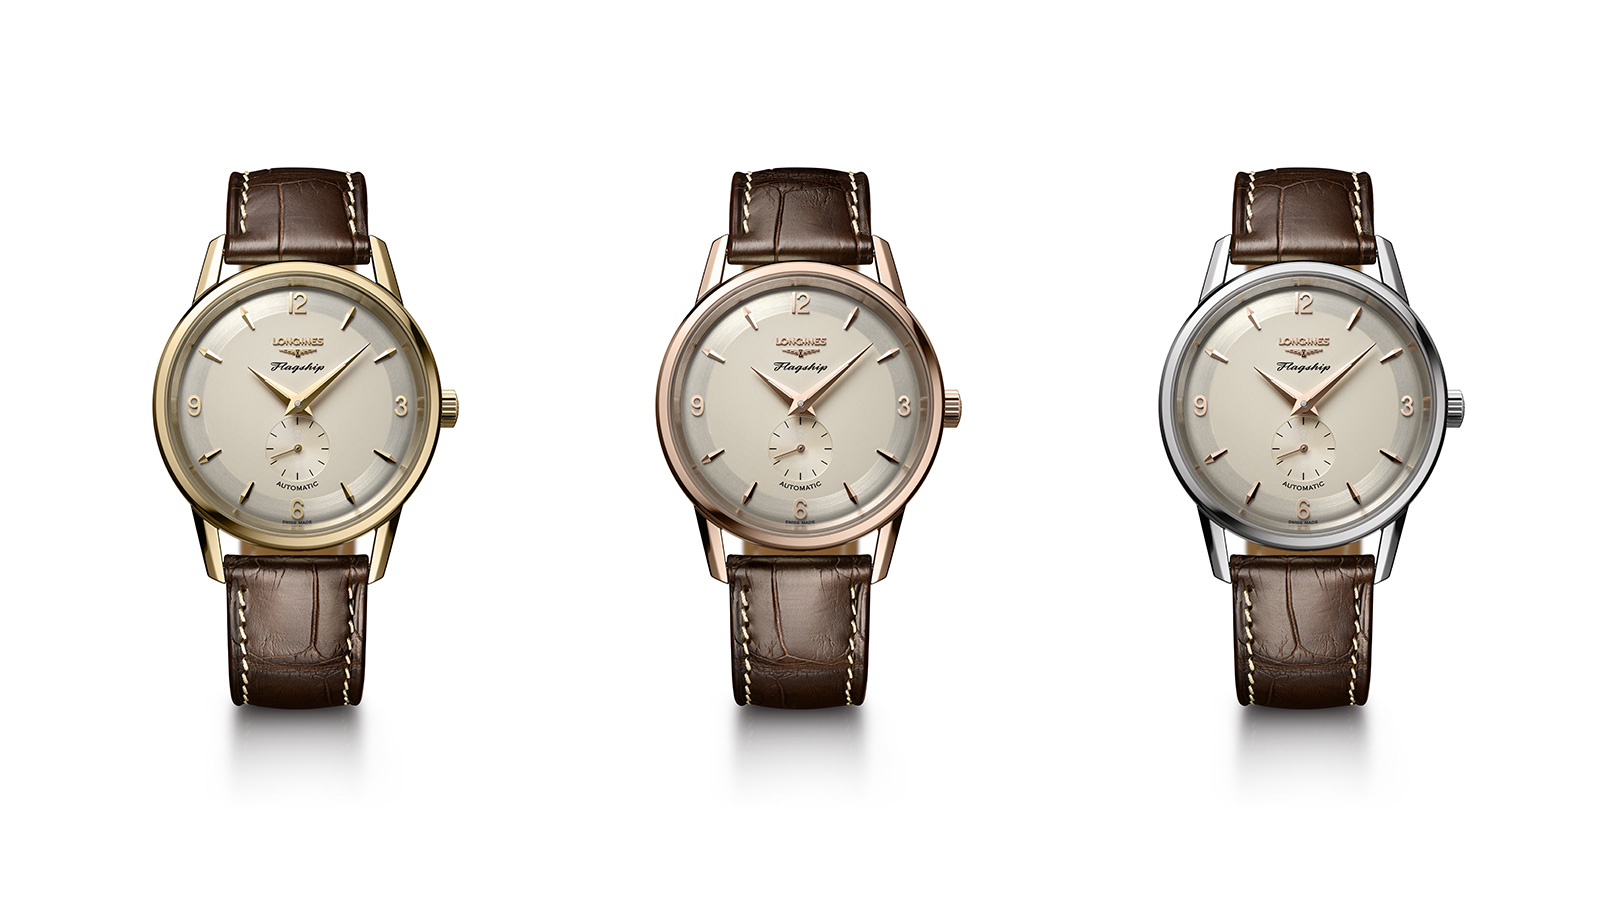 Naziv: news-flagship-heritage-60th-anniversary-all-watches-1600x900.jpg, pregleda: 229, veličina: 184,6 KB